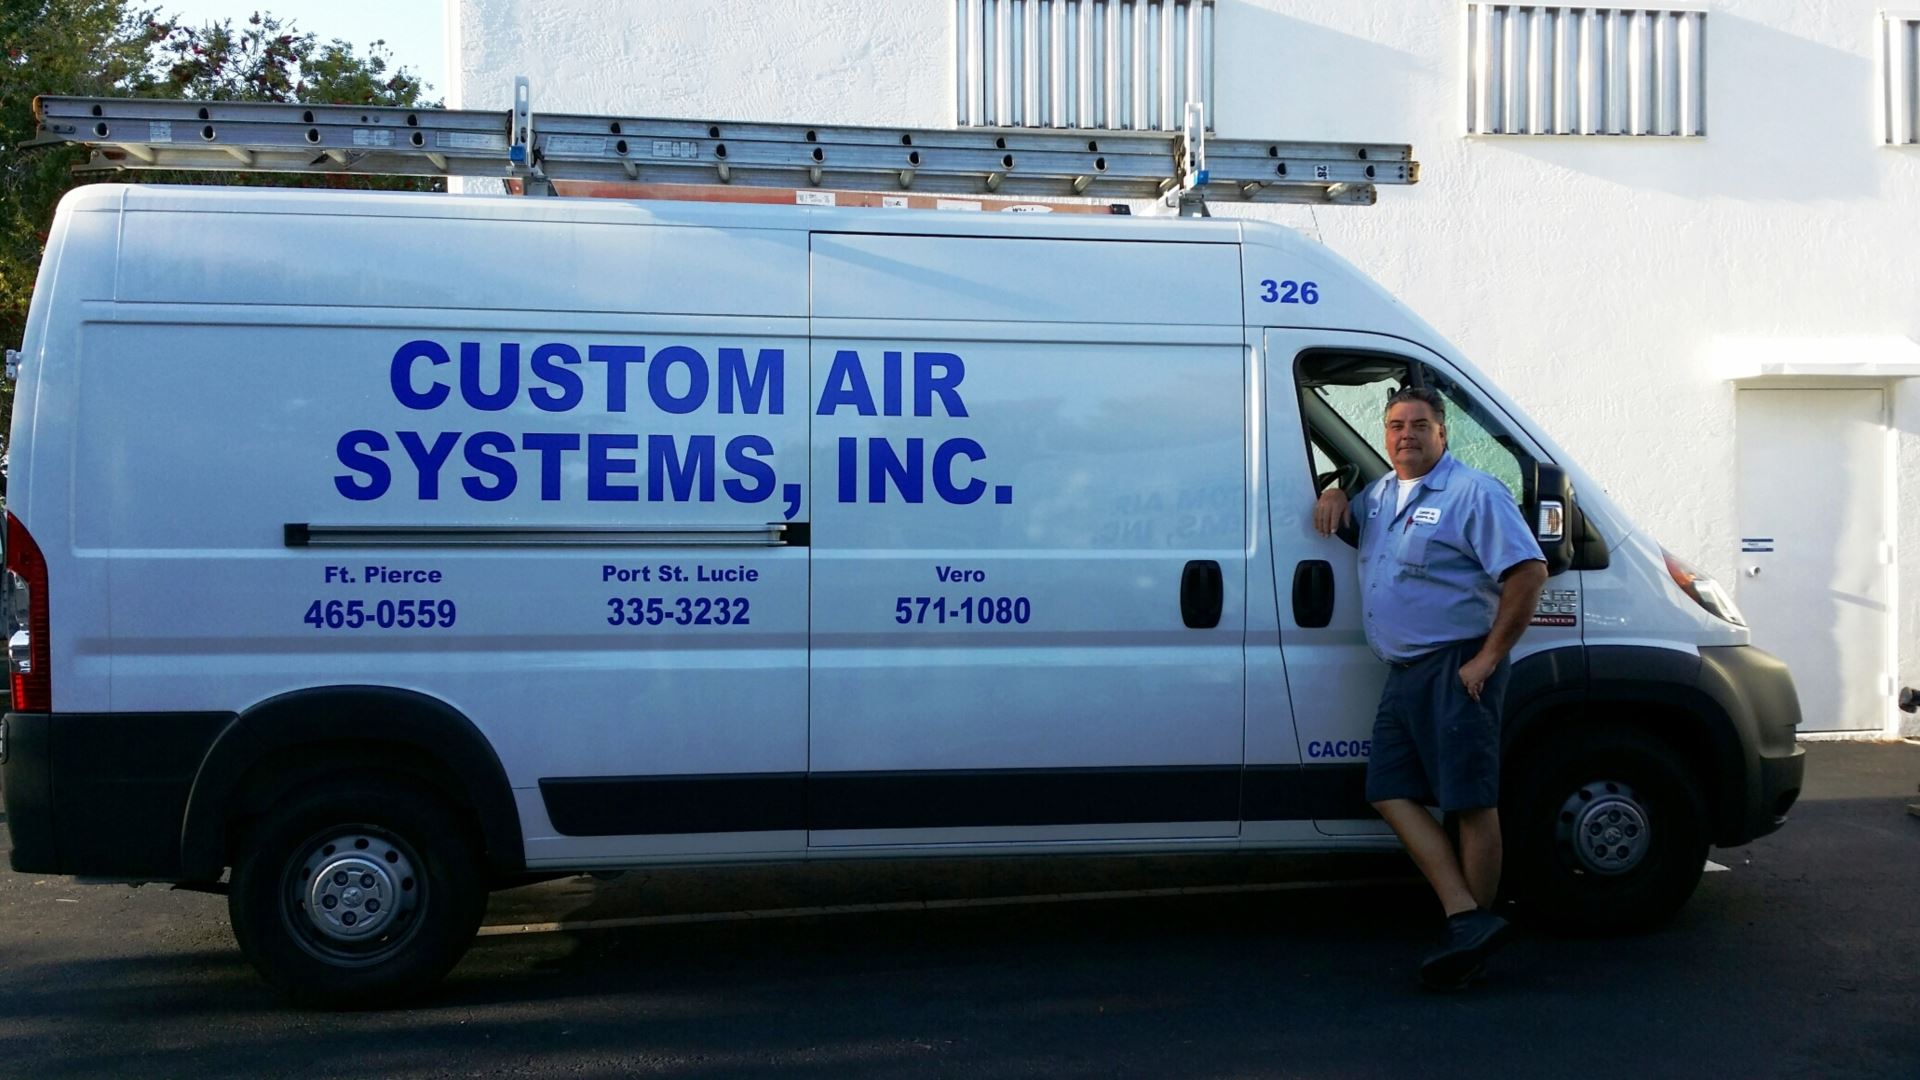 Ronnie Lauch our Service Manager for air condition and appliance has been with our team for 22 years.